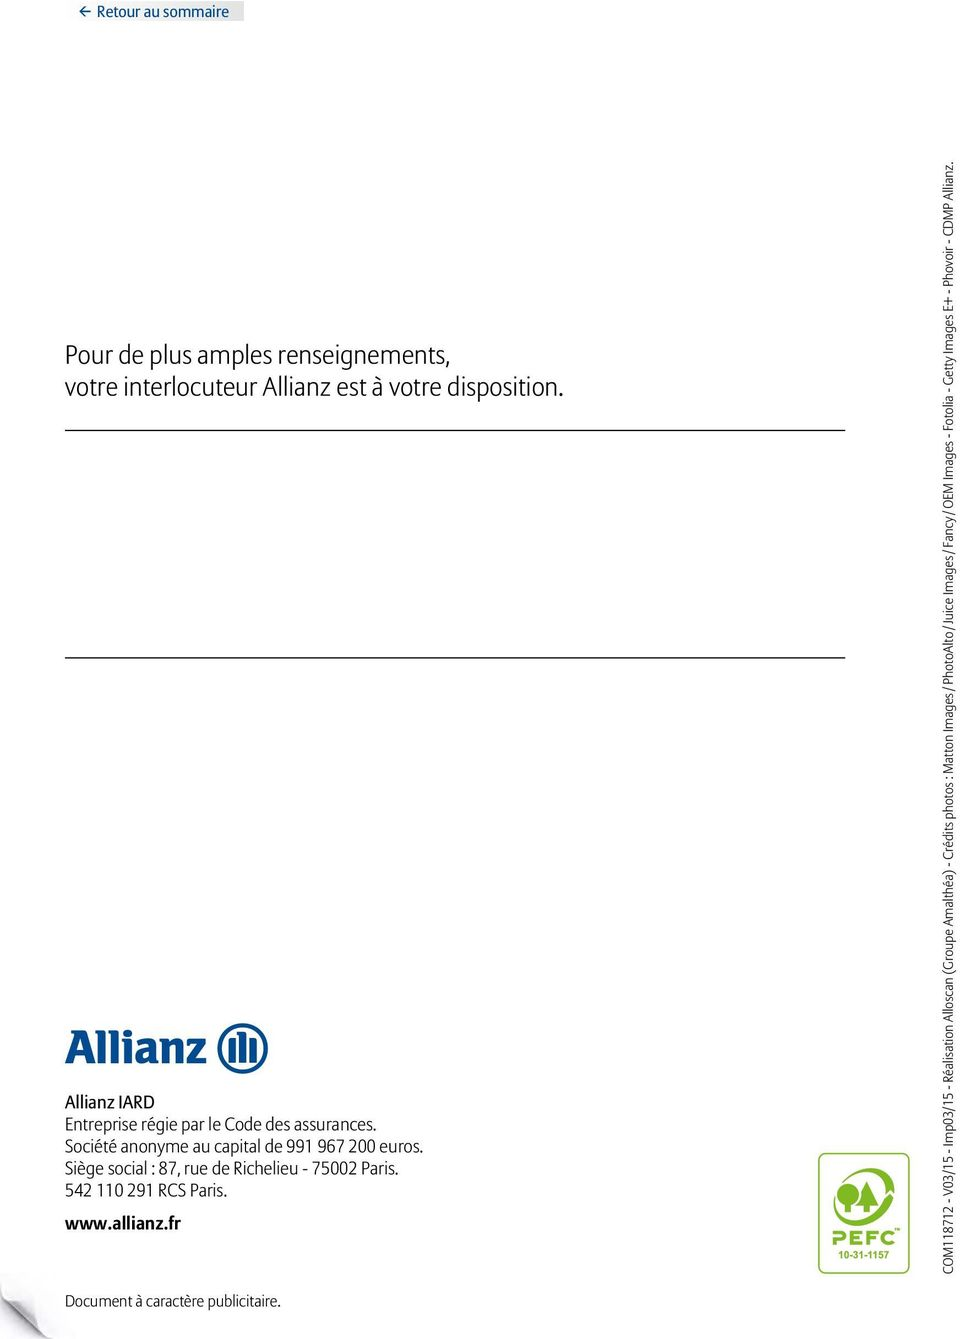 Siège social : 87, rue de Richelieu - 75002 Paris. 542 110 291 RCS Paris. www.allianz.